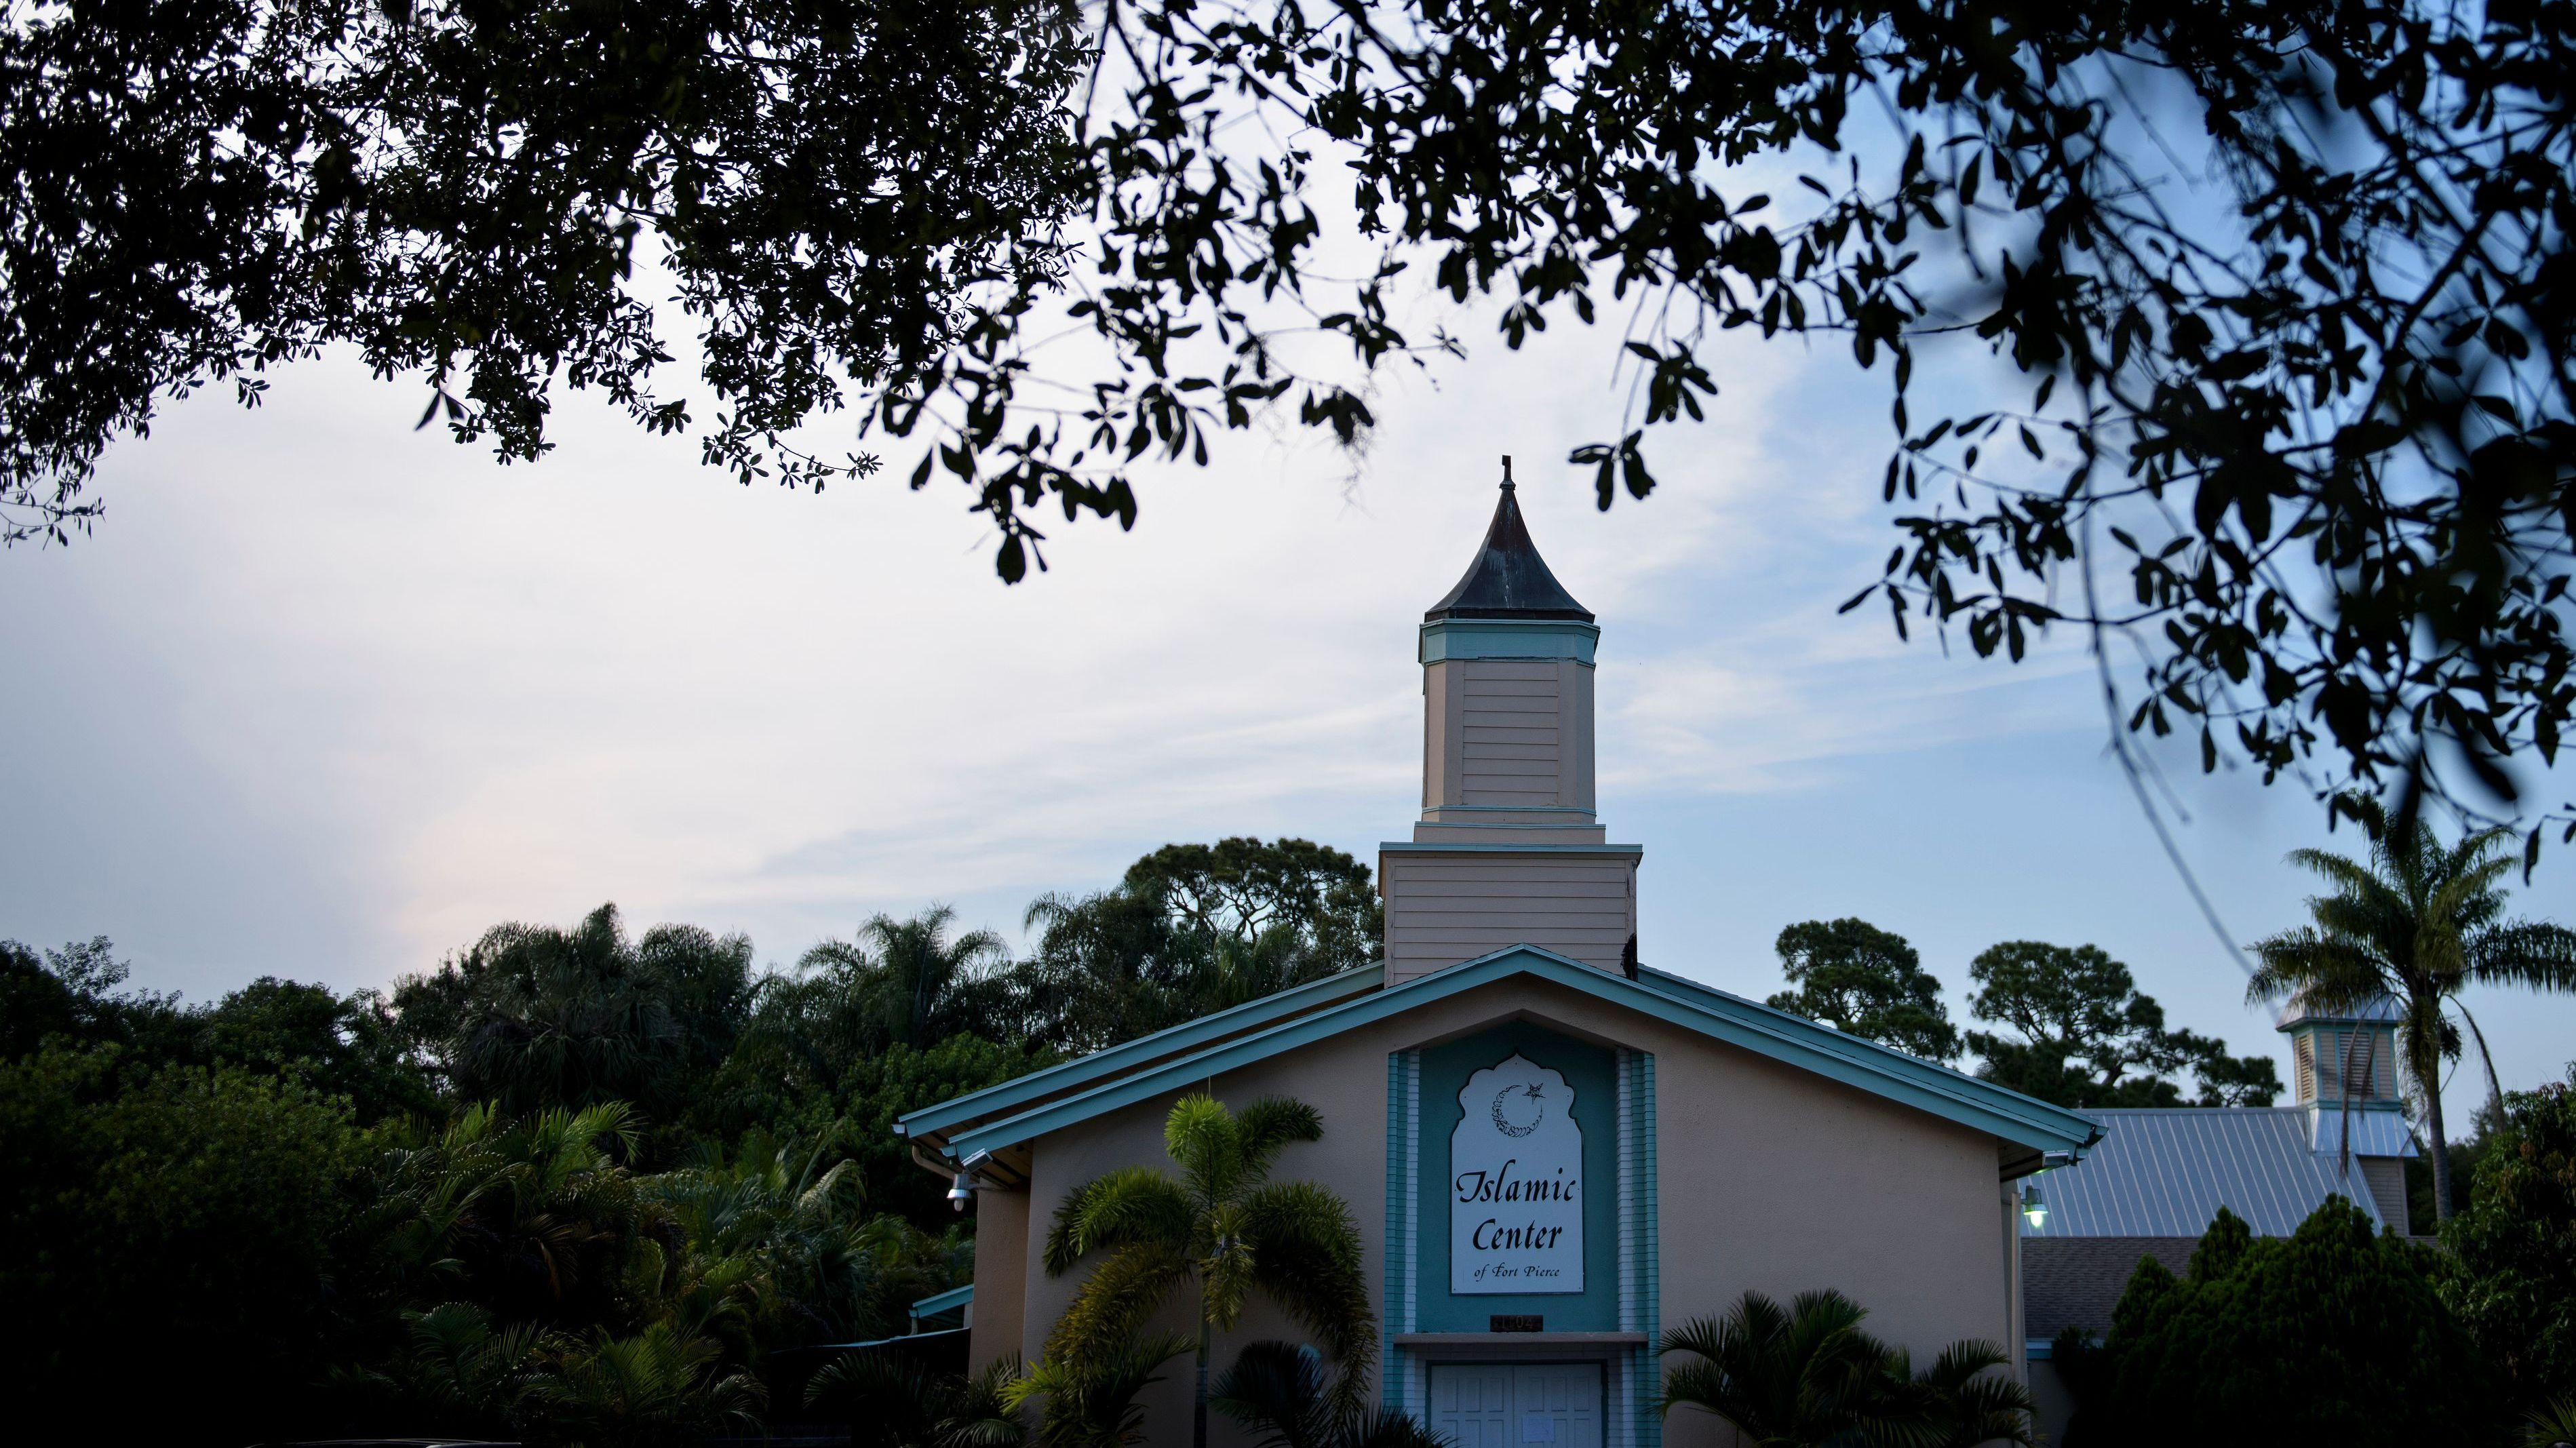 The mosque in Fort Pierce, Fla., where Pulse nightclub shooter Omar Mateen had worshipped, is shown on June 14. A fire broke out at the Islamic Center of Fort Pierce early Monday. (Photo by Brendan Smialowski/AFP/Getty Images)